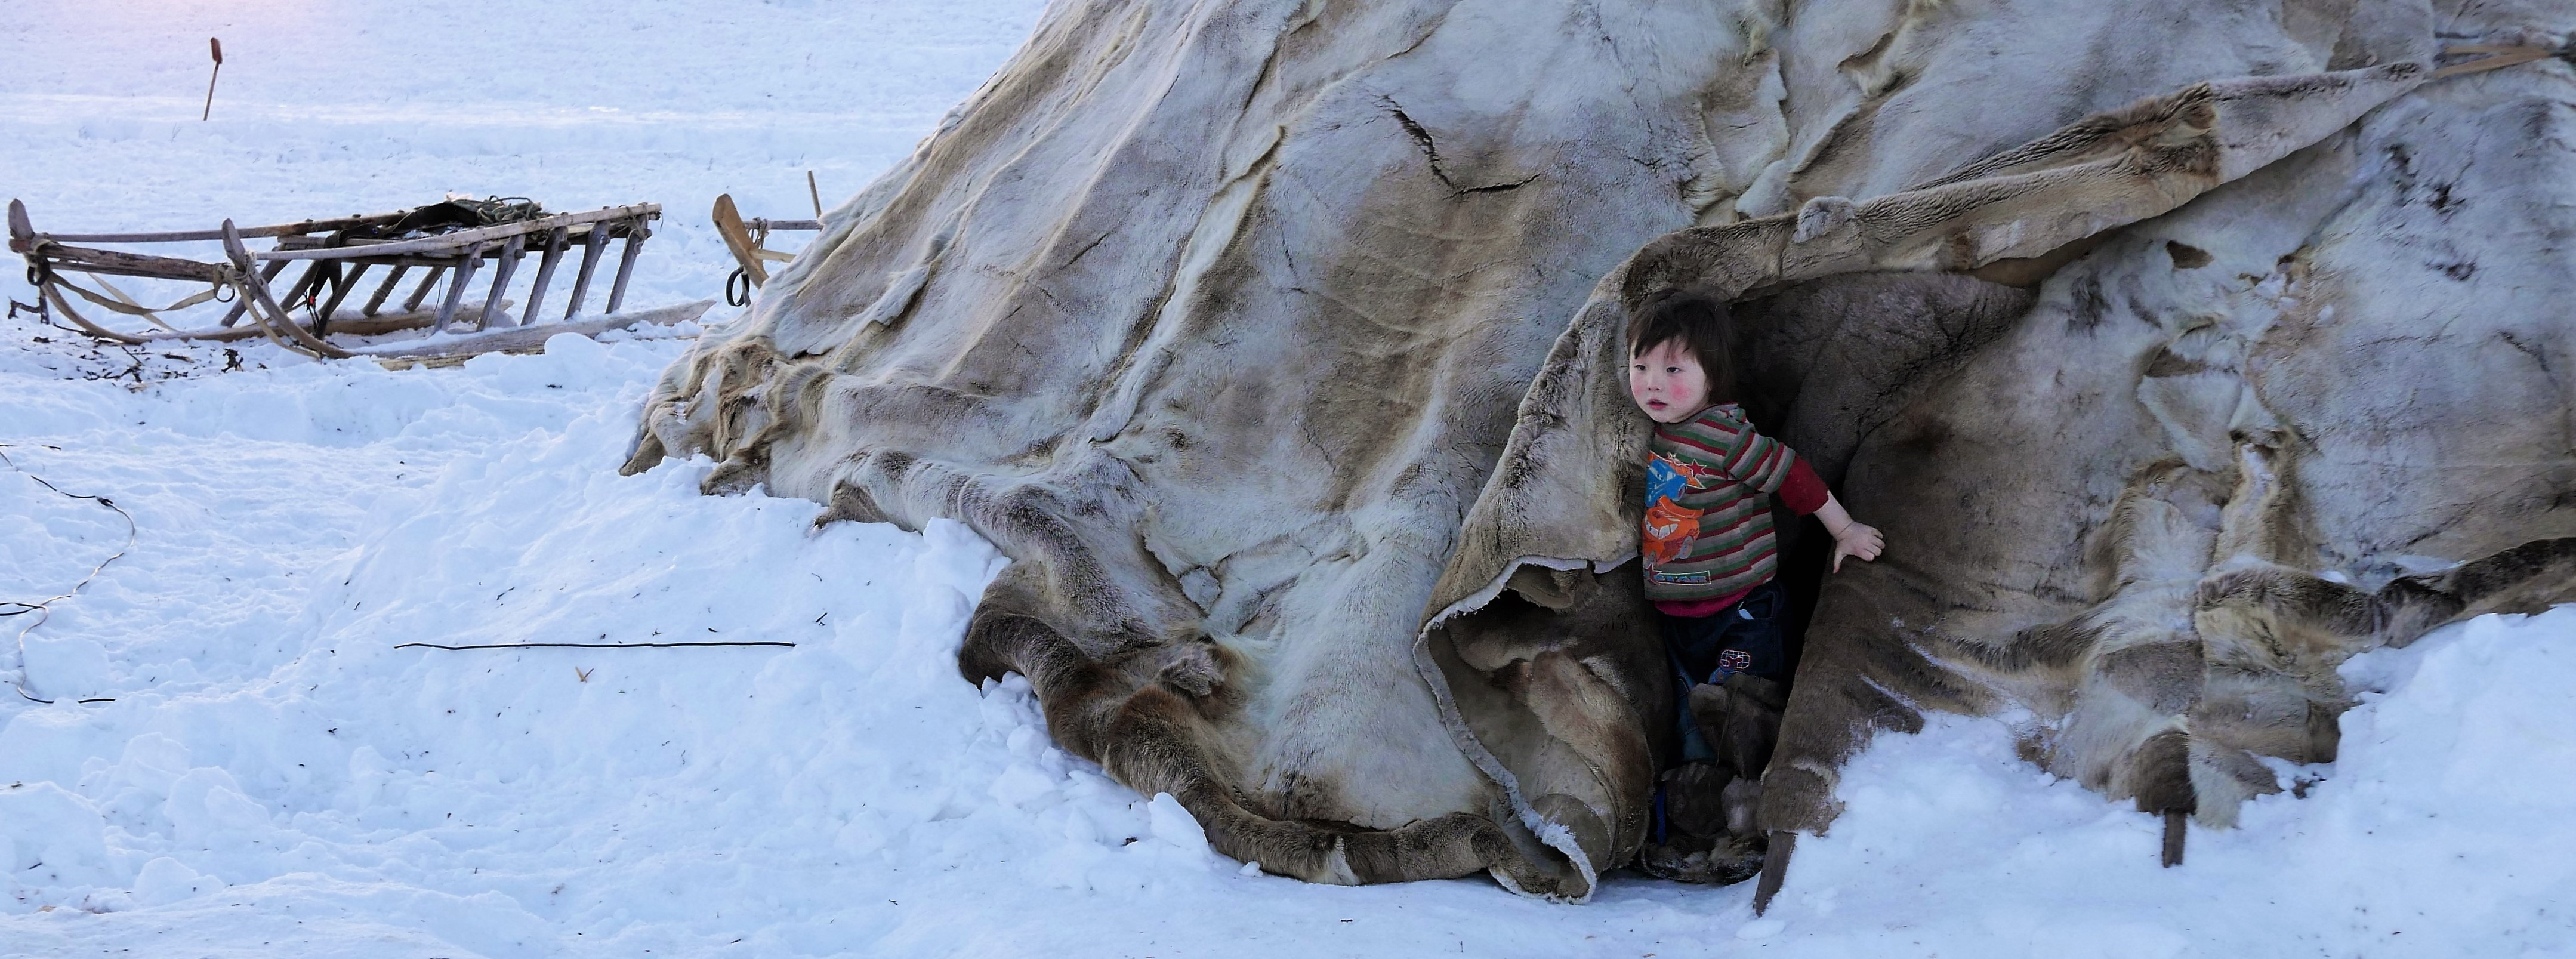 A Nenets child emerges from their tent